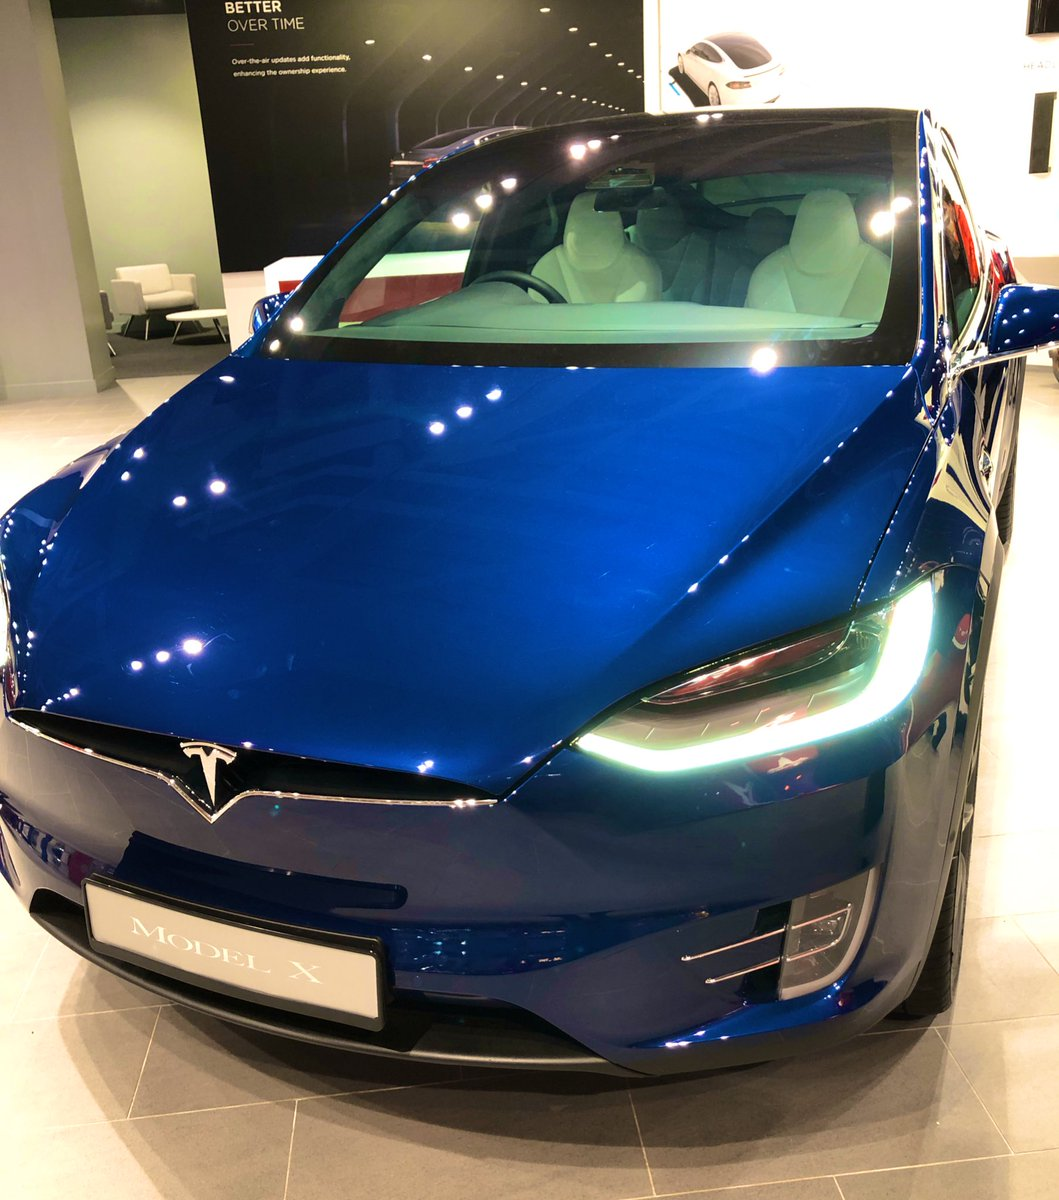 Actually selling my house to buy a @Tesla and living in it!  I'm pretty sure this is a life choice @DrLupo would agree with #fullsend pic.twitter.com/Nx80U6Qwp8